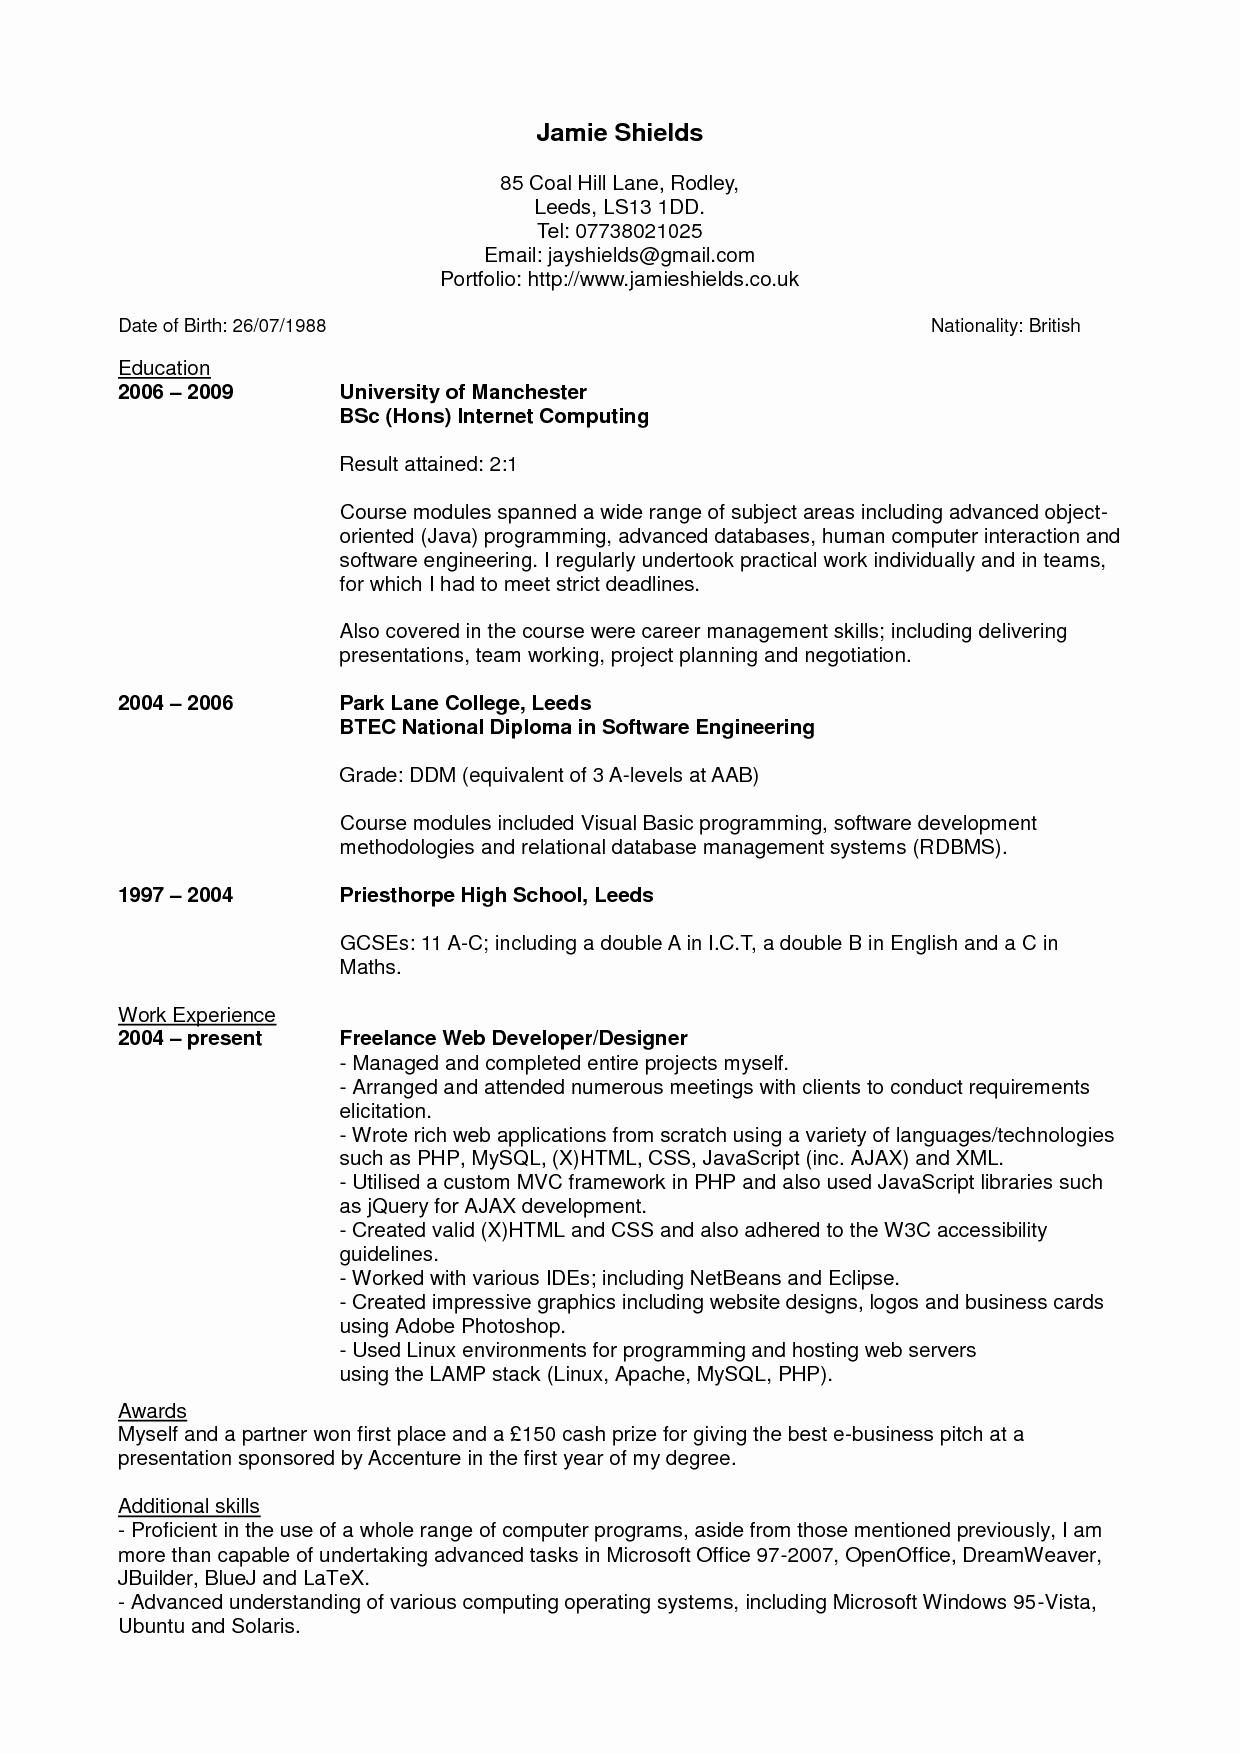 leeds resume template example-Resume format for Phd Candidate Awesome Latex Resume Template Phd Inspirational Latex Resume Template Best 18-n